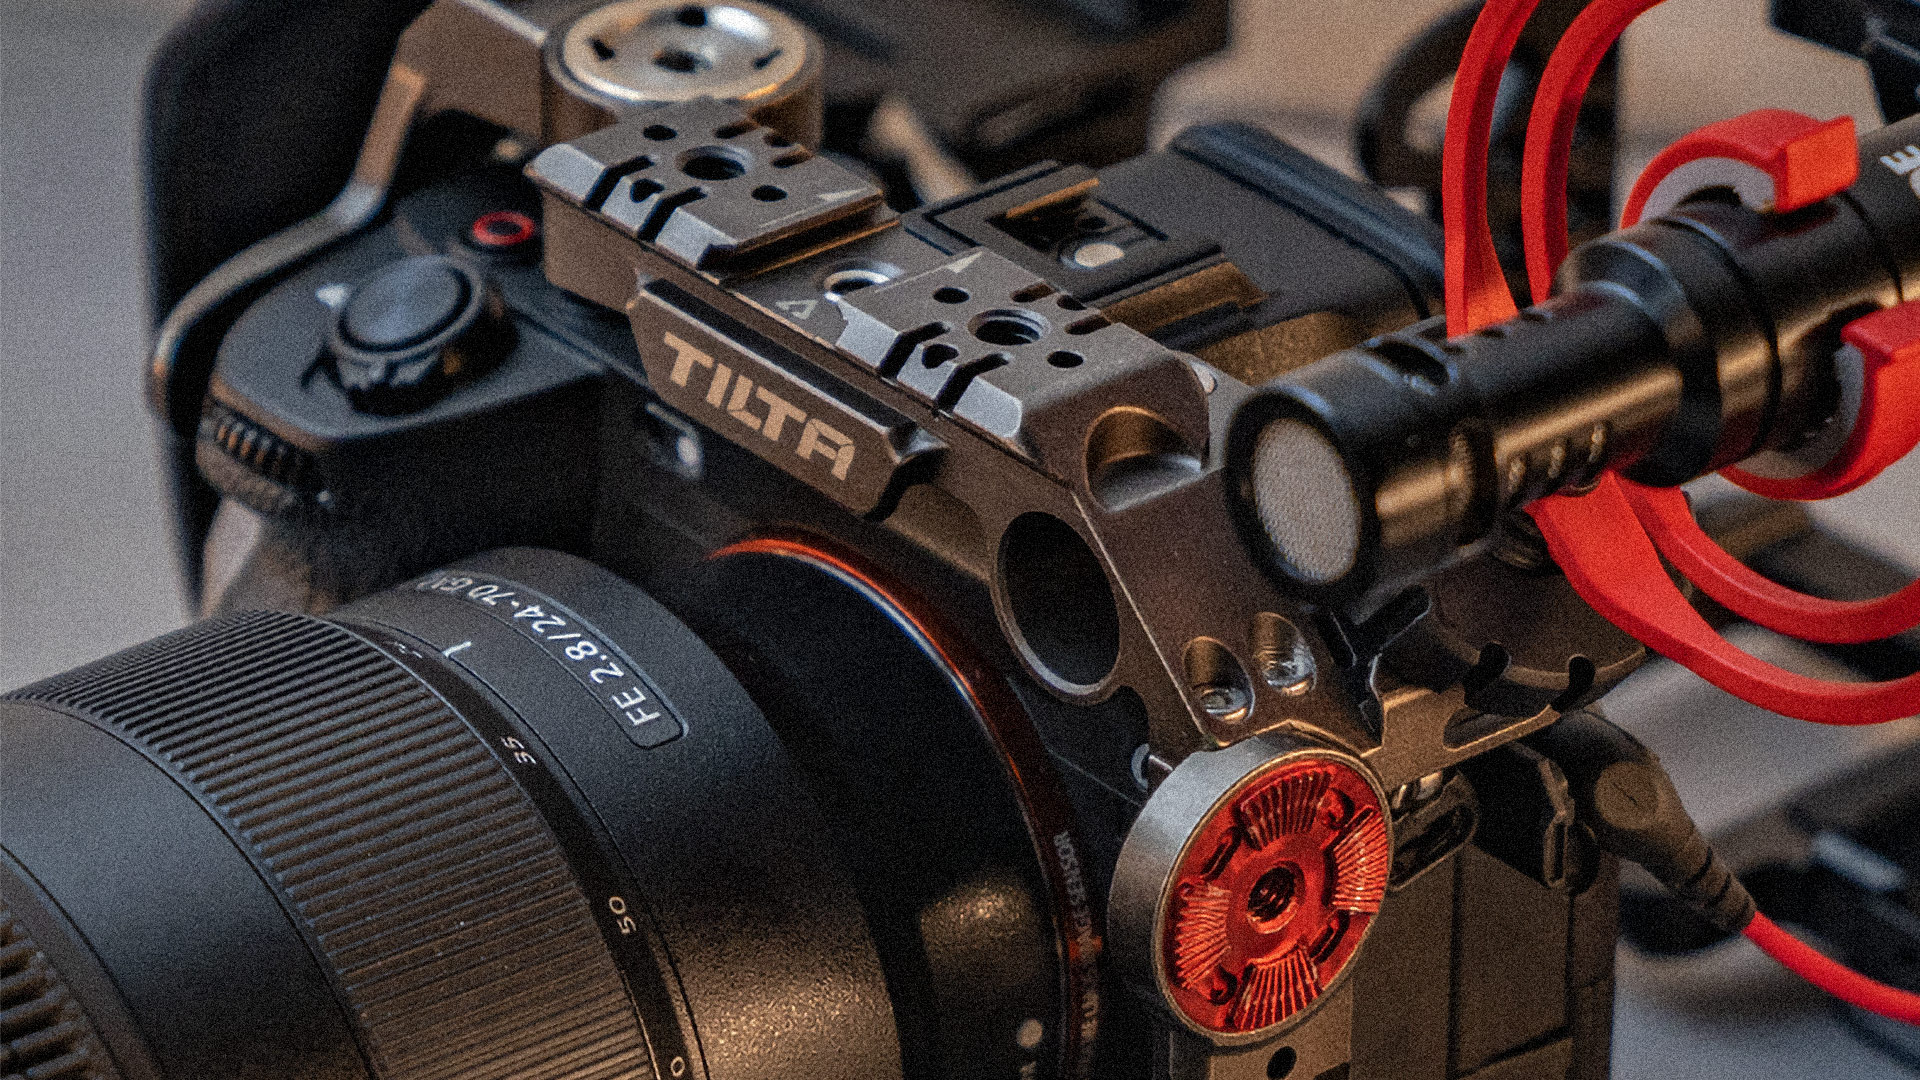 camera rig for a7s3